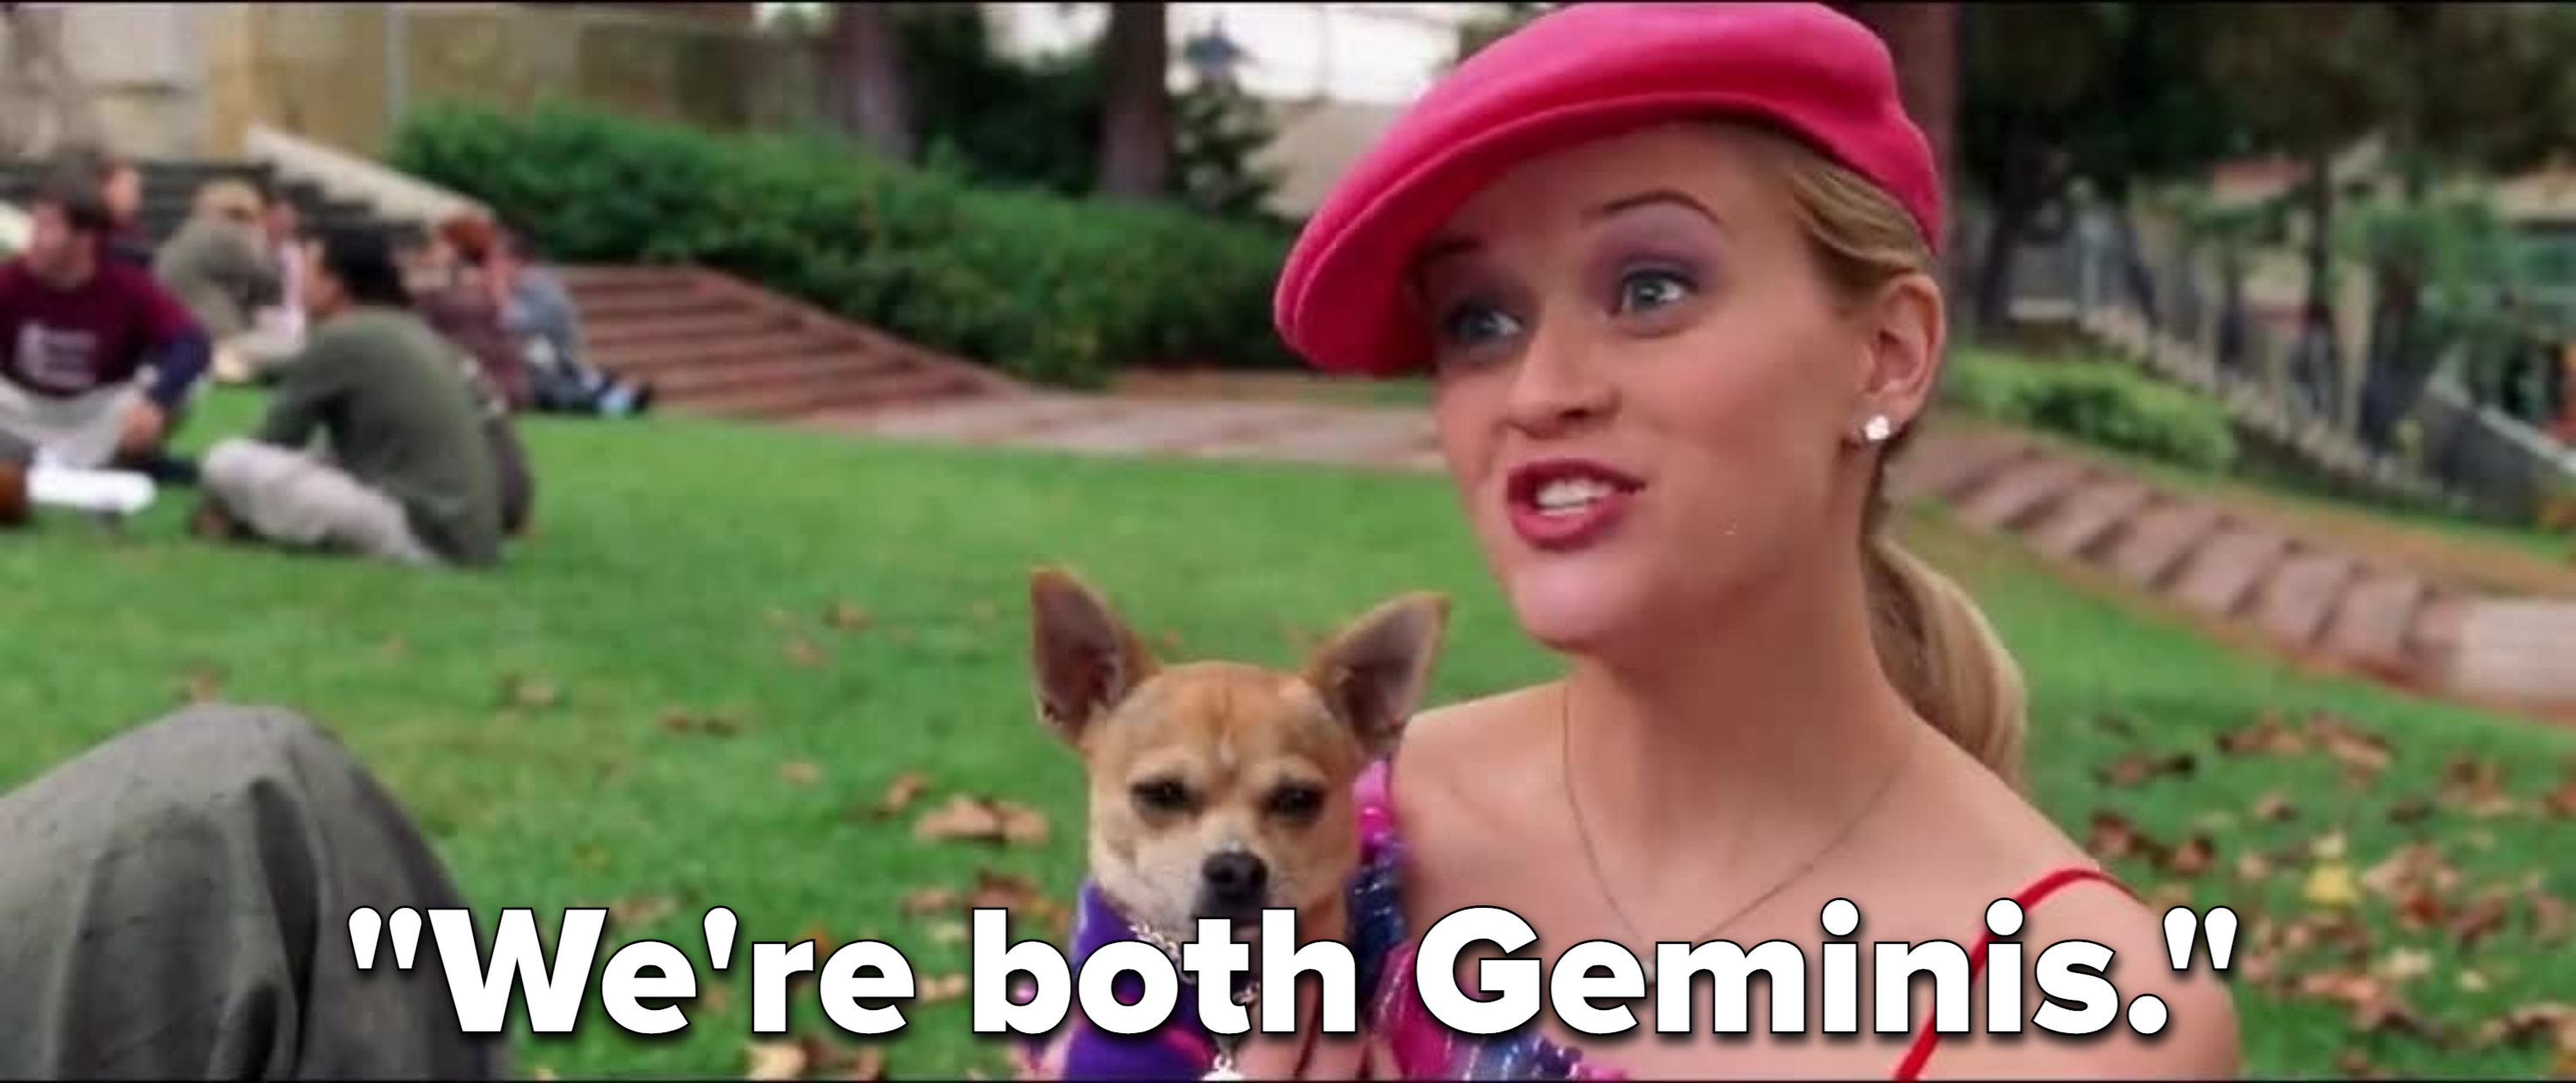 """Elle Woods holding Bruiser, her petchihuahua, saying """"We're both Geminis."""""""